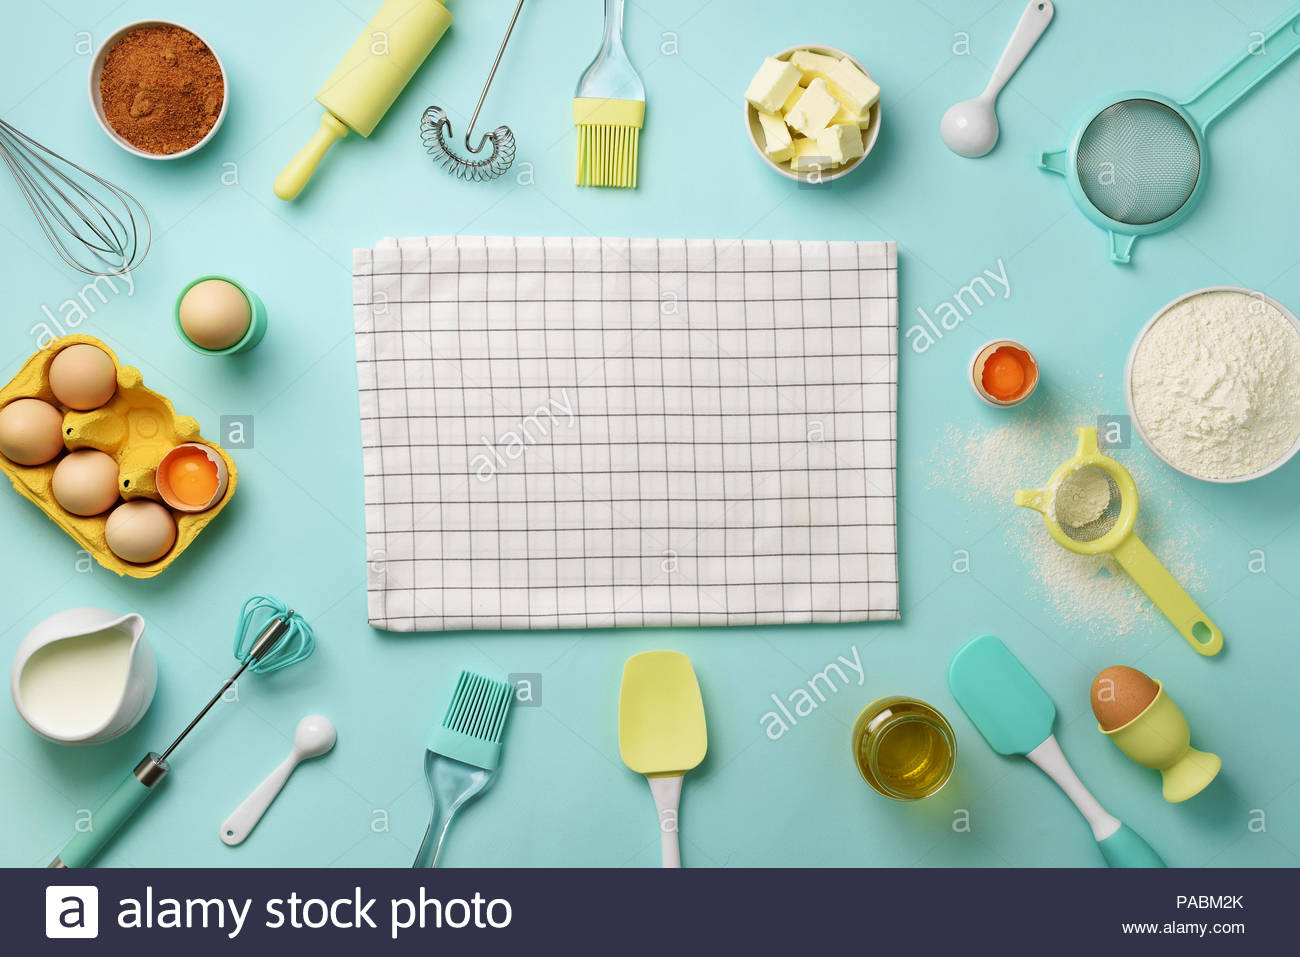 Bakery ingredients over blue background   butter sugar flour 1300x957